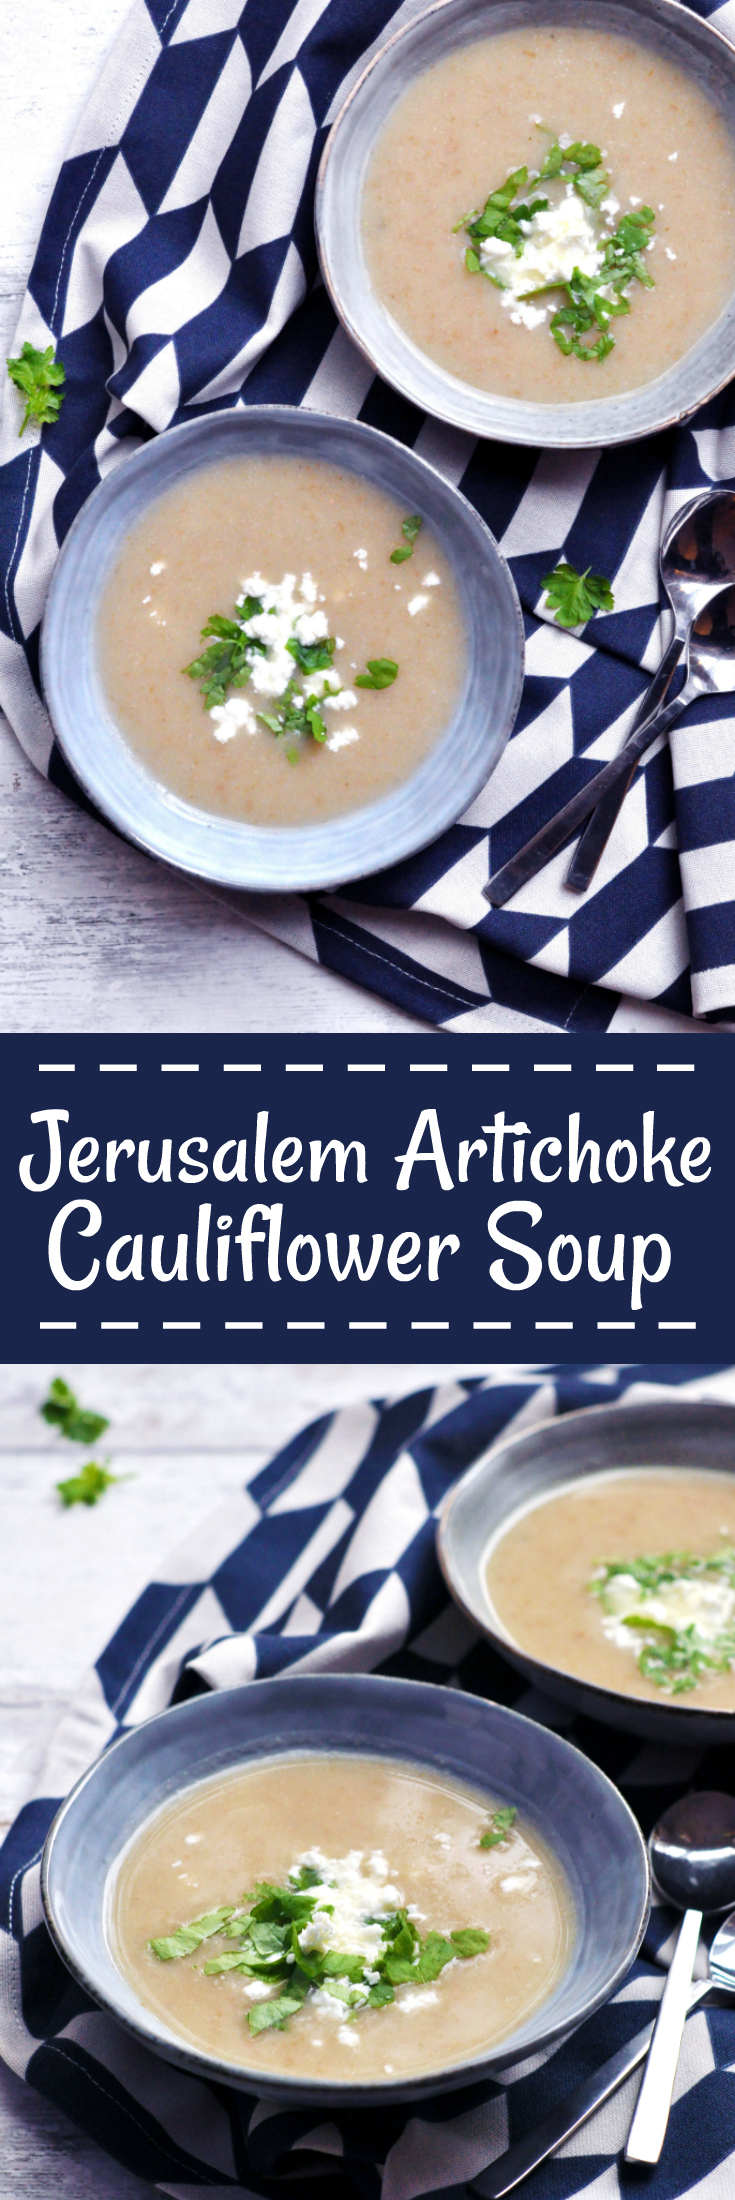 Jerusalem Artichoke Cauliflower Soup - Pin Me